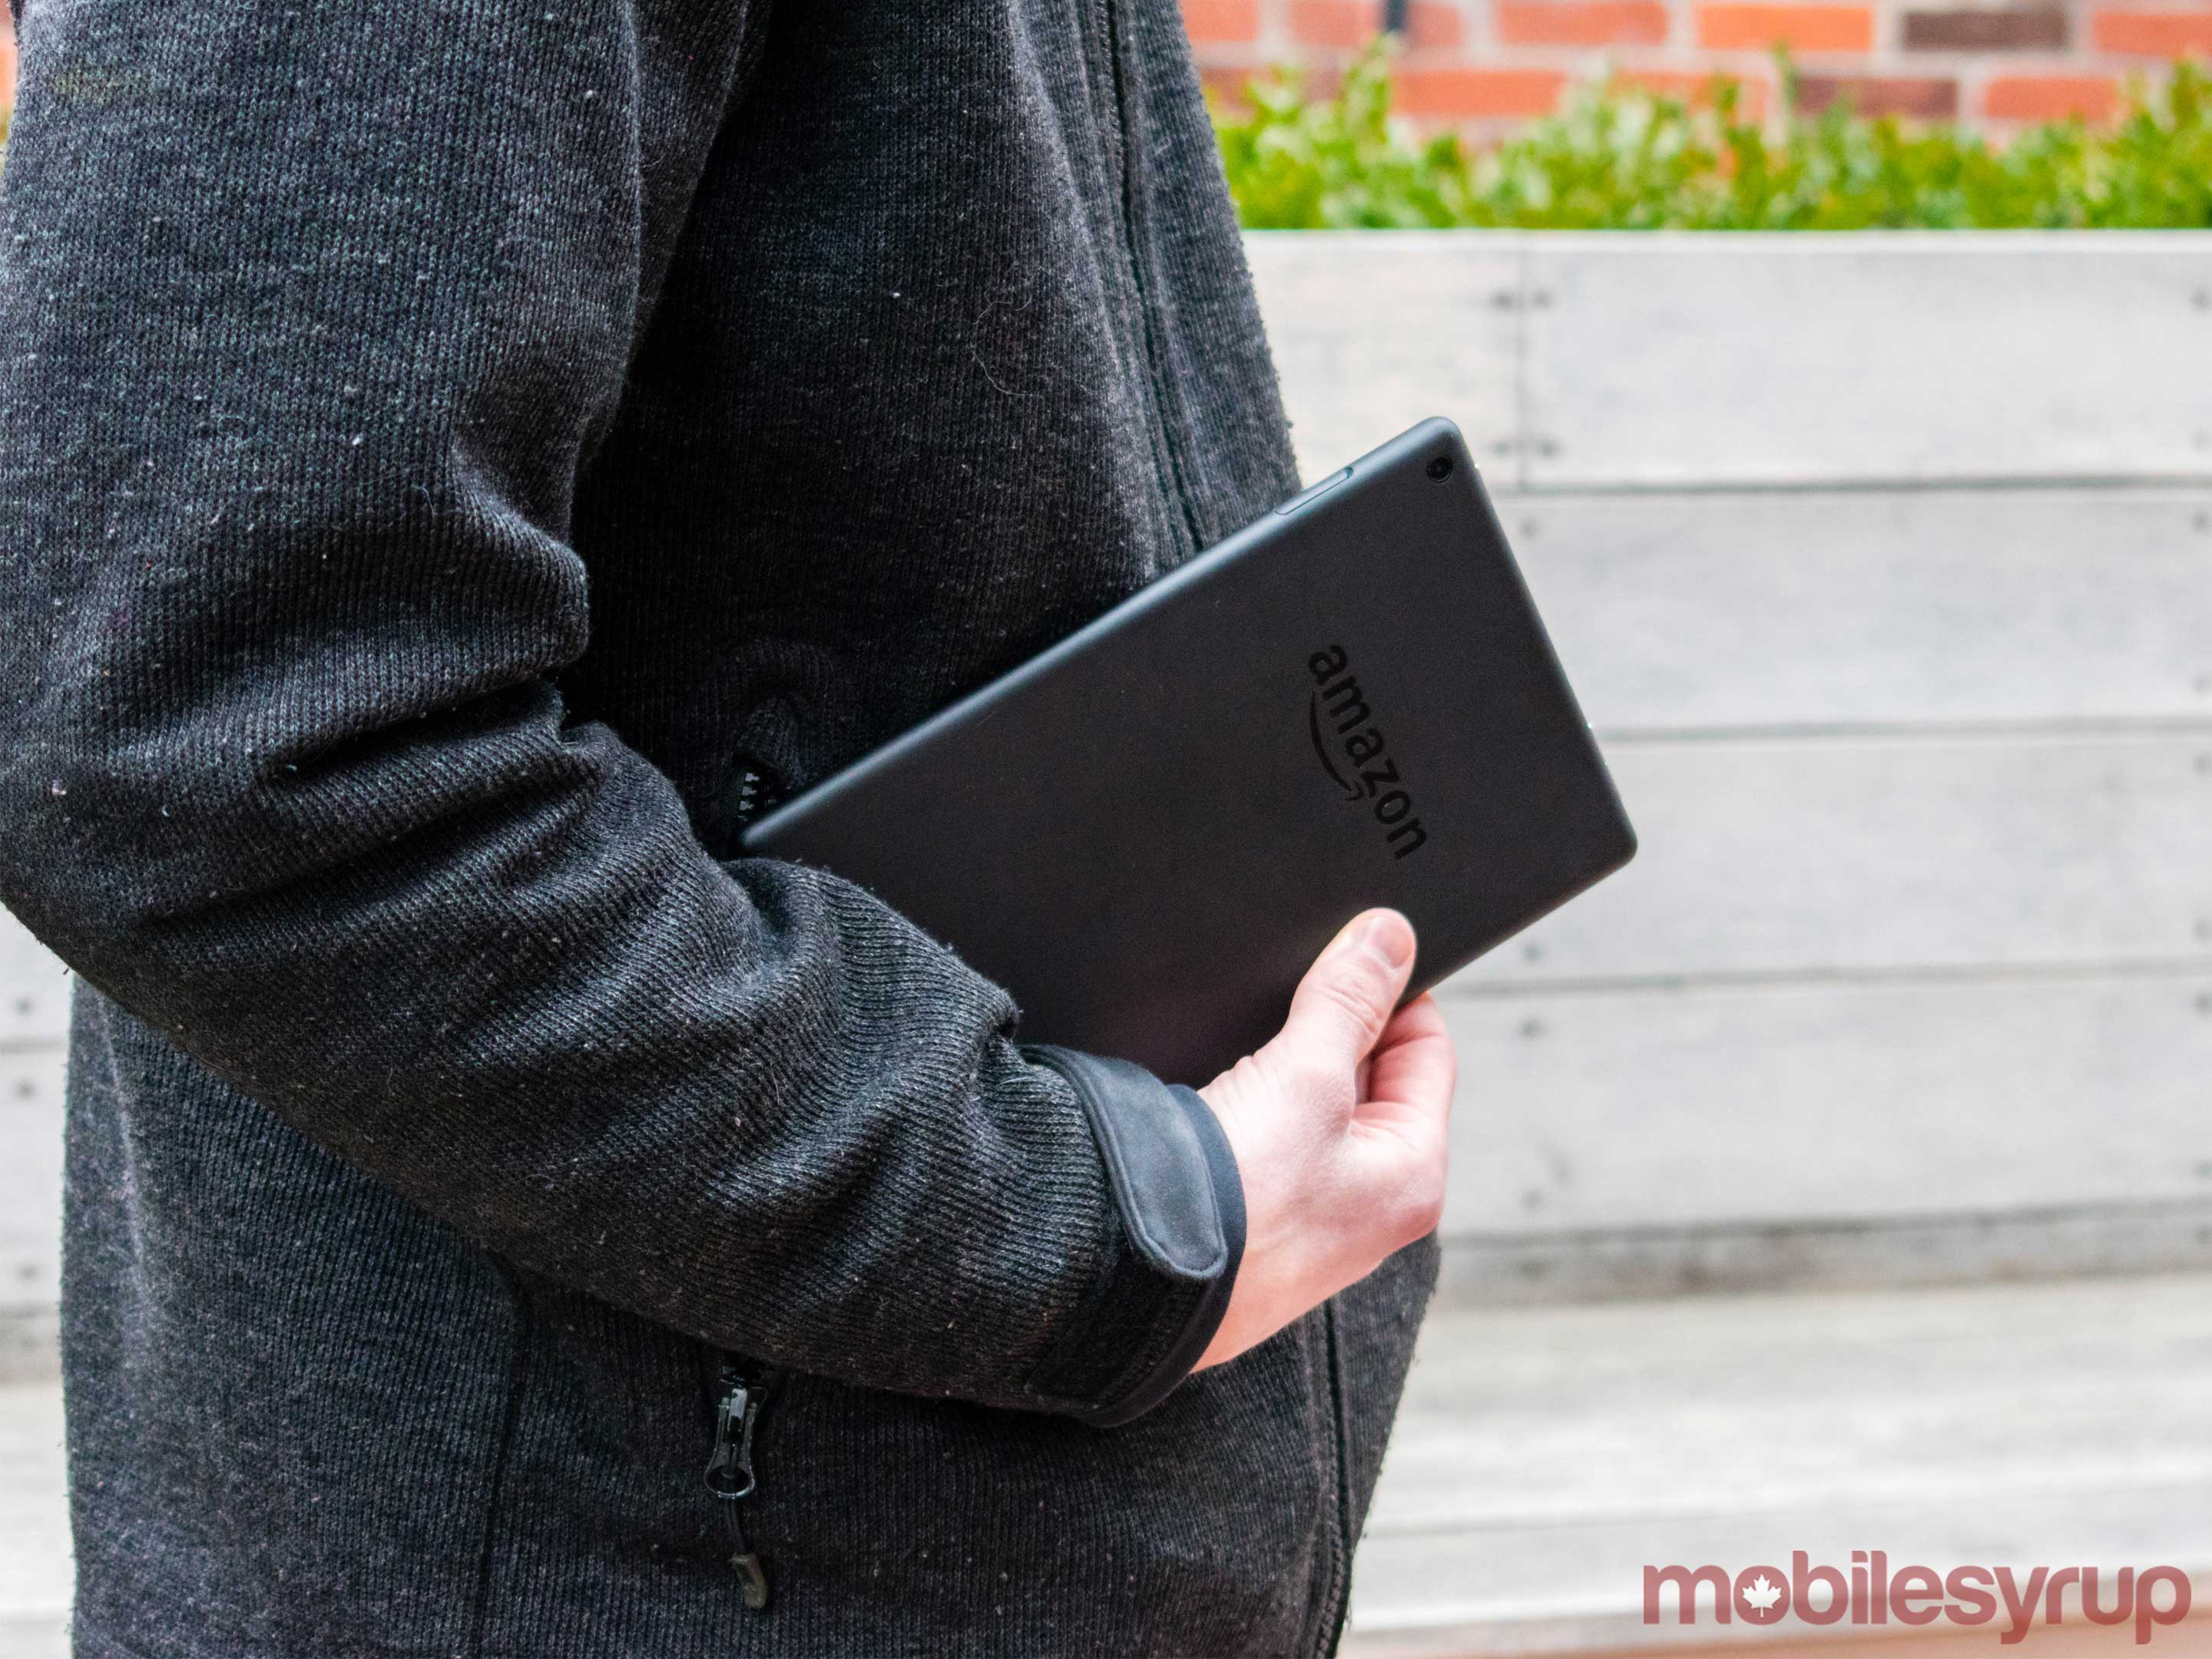 Man holding the Amazon tablet while standing.